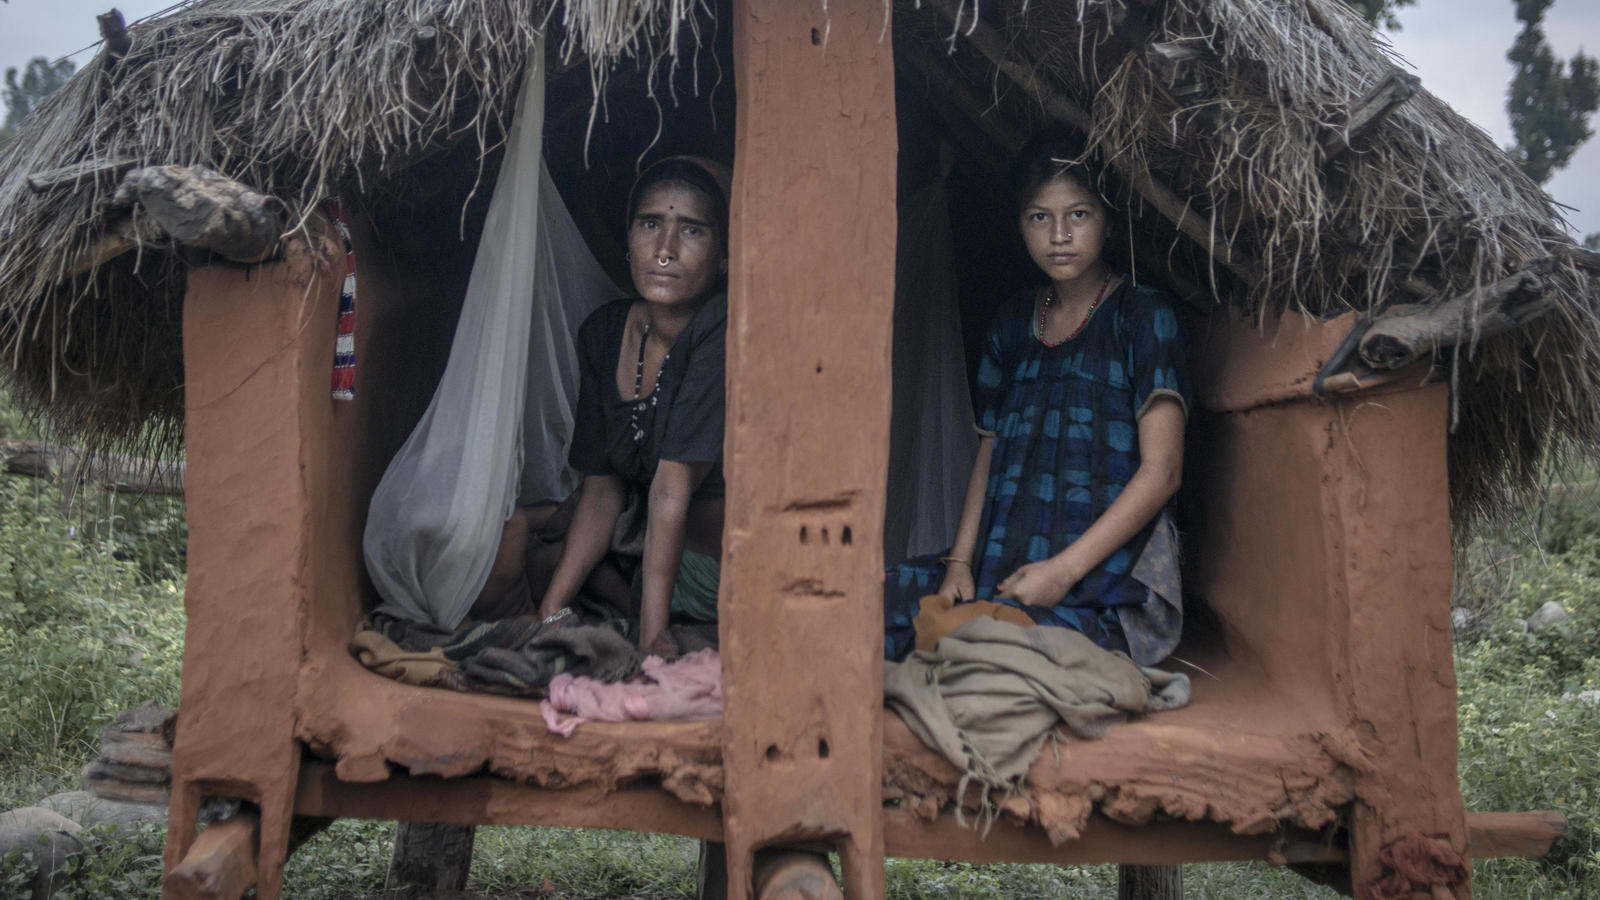 Mangu and Chandra prepare to spend the night in a chhaupadi hut. Being together offers some protection against the risk of sexual assault and rape, but not against snake attacks.